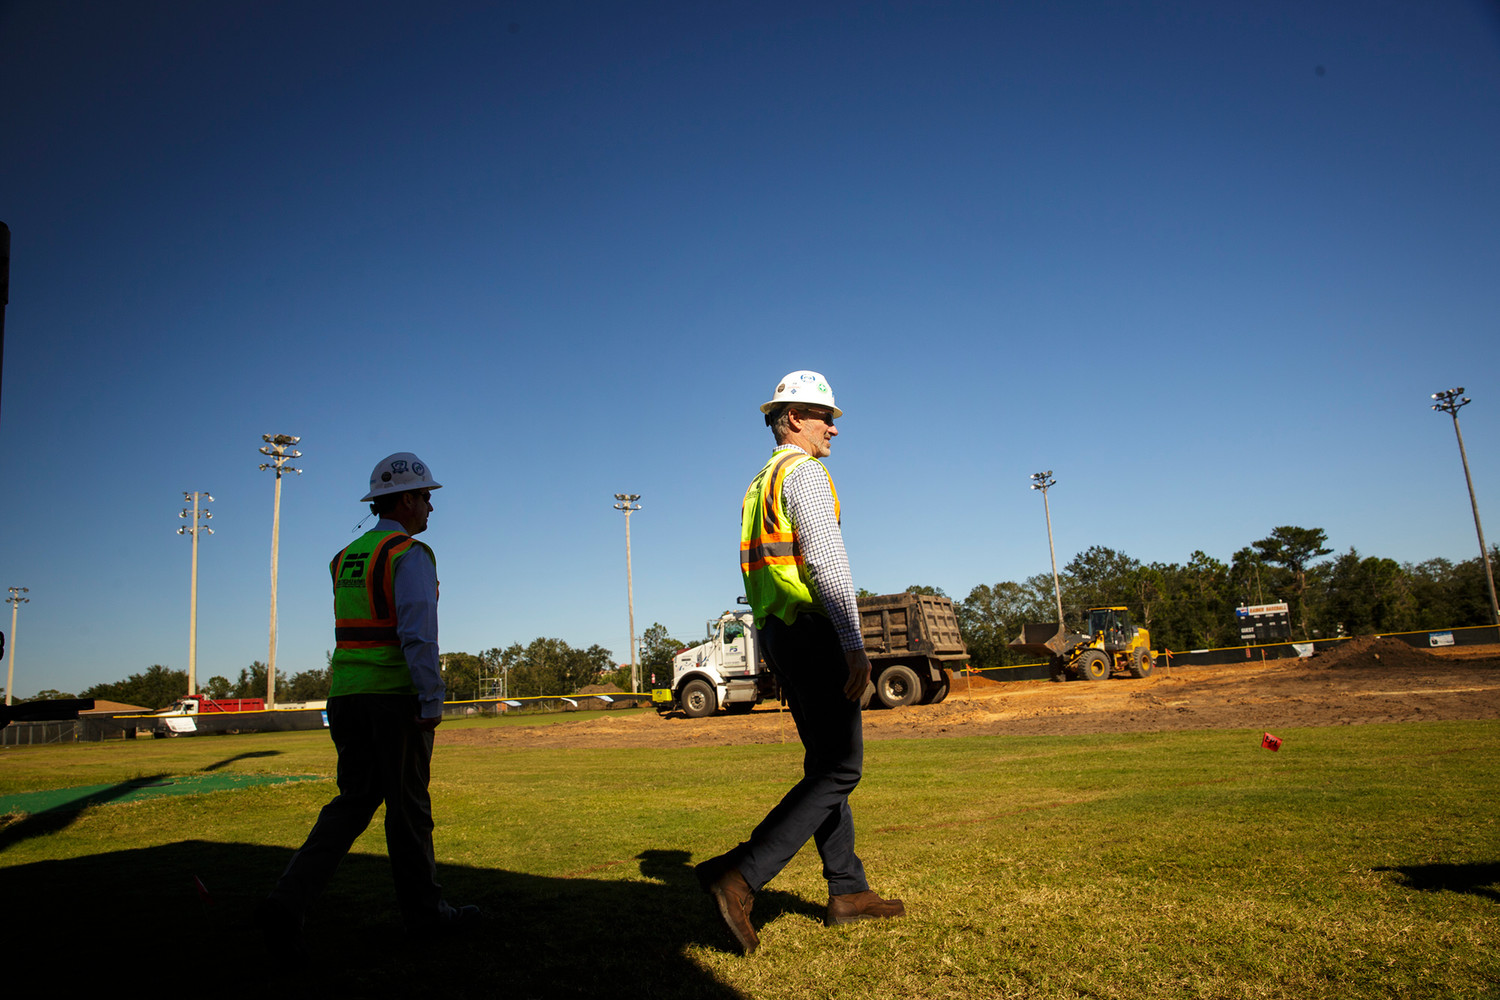 Orange Park High School graduate and Jacksonville-based contractor Ryan Schmitt walks onto the baseball field at OPHS where his company is providing free dirt work to help get the field back in top form.